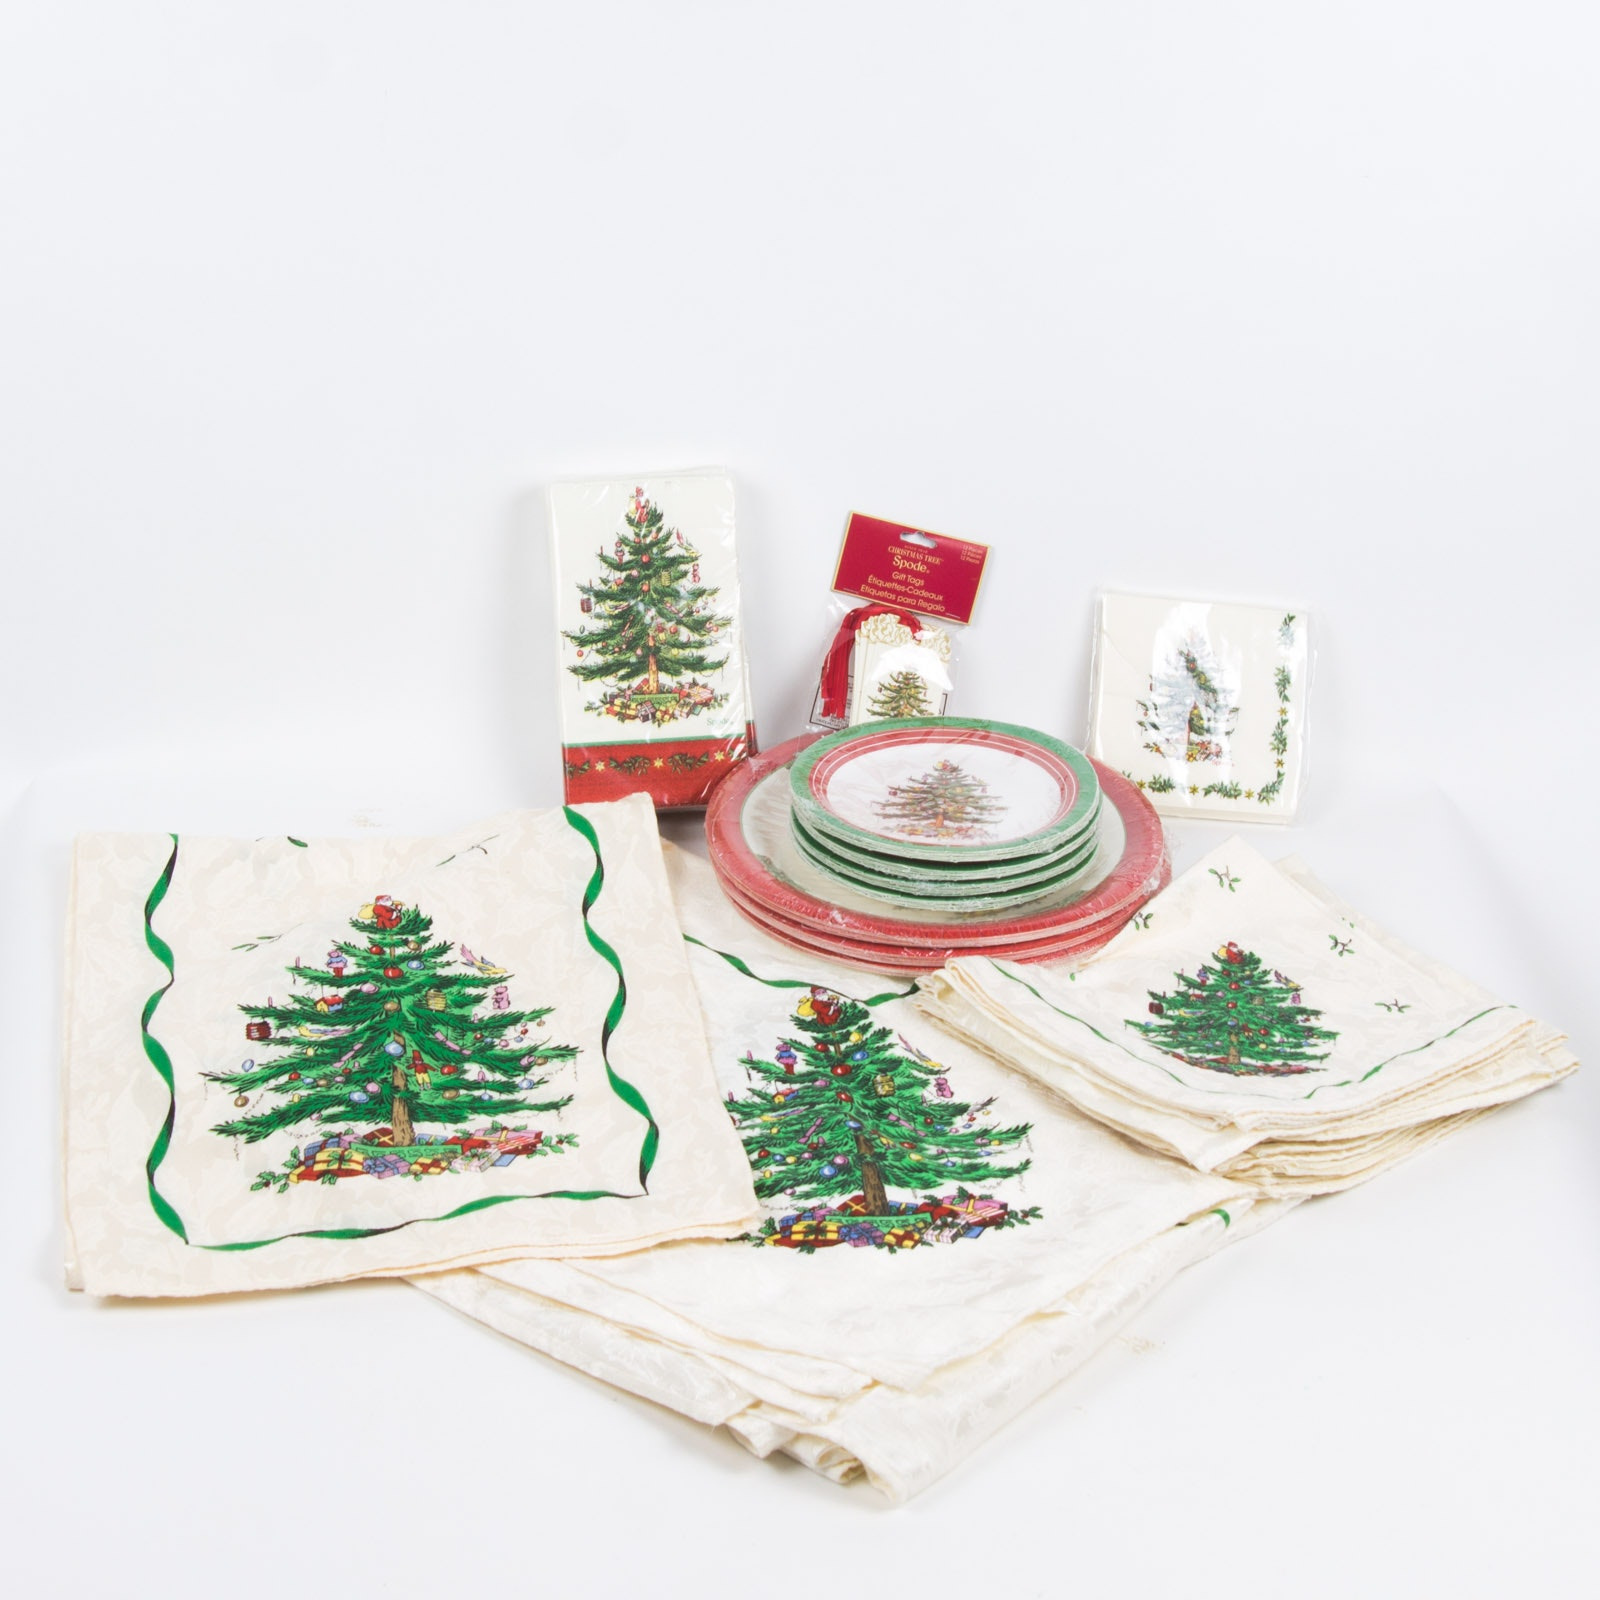 Spode Christmas Tree Table Cloths Napkins u0026 Paper Plates ... & Spode Christmas Tree Table Cloths Napkins u0026 Paper Plates : EBTH